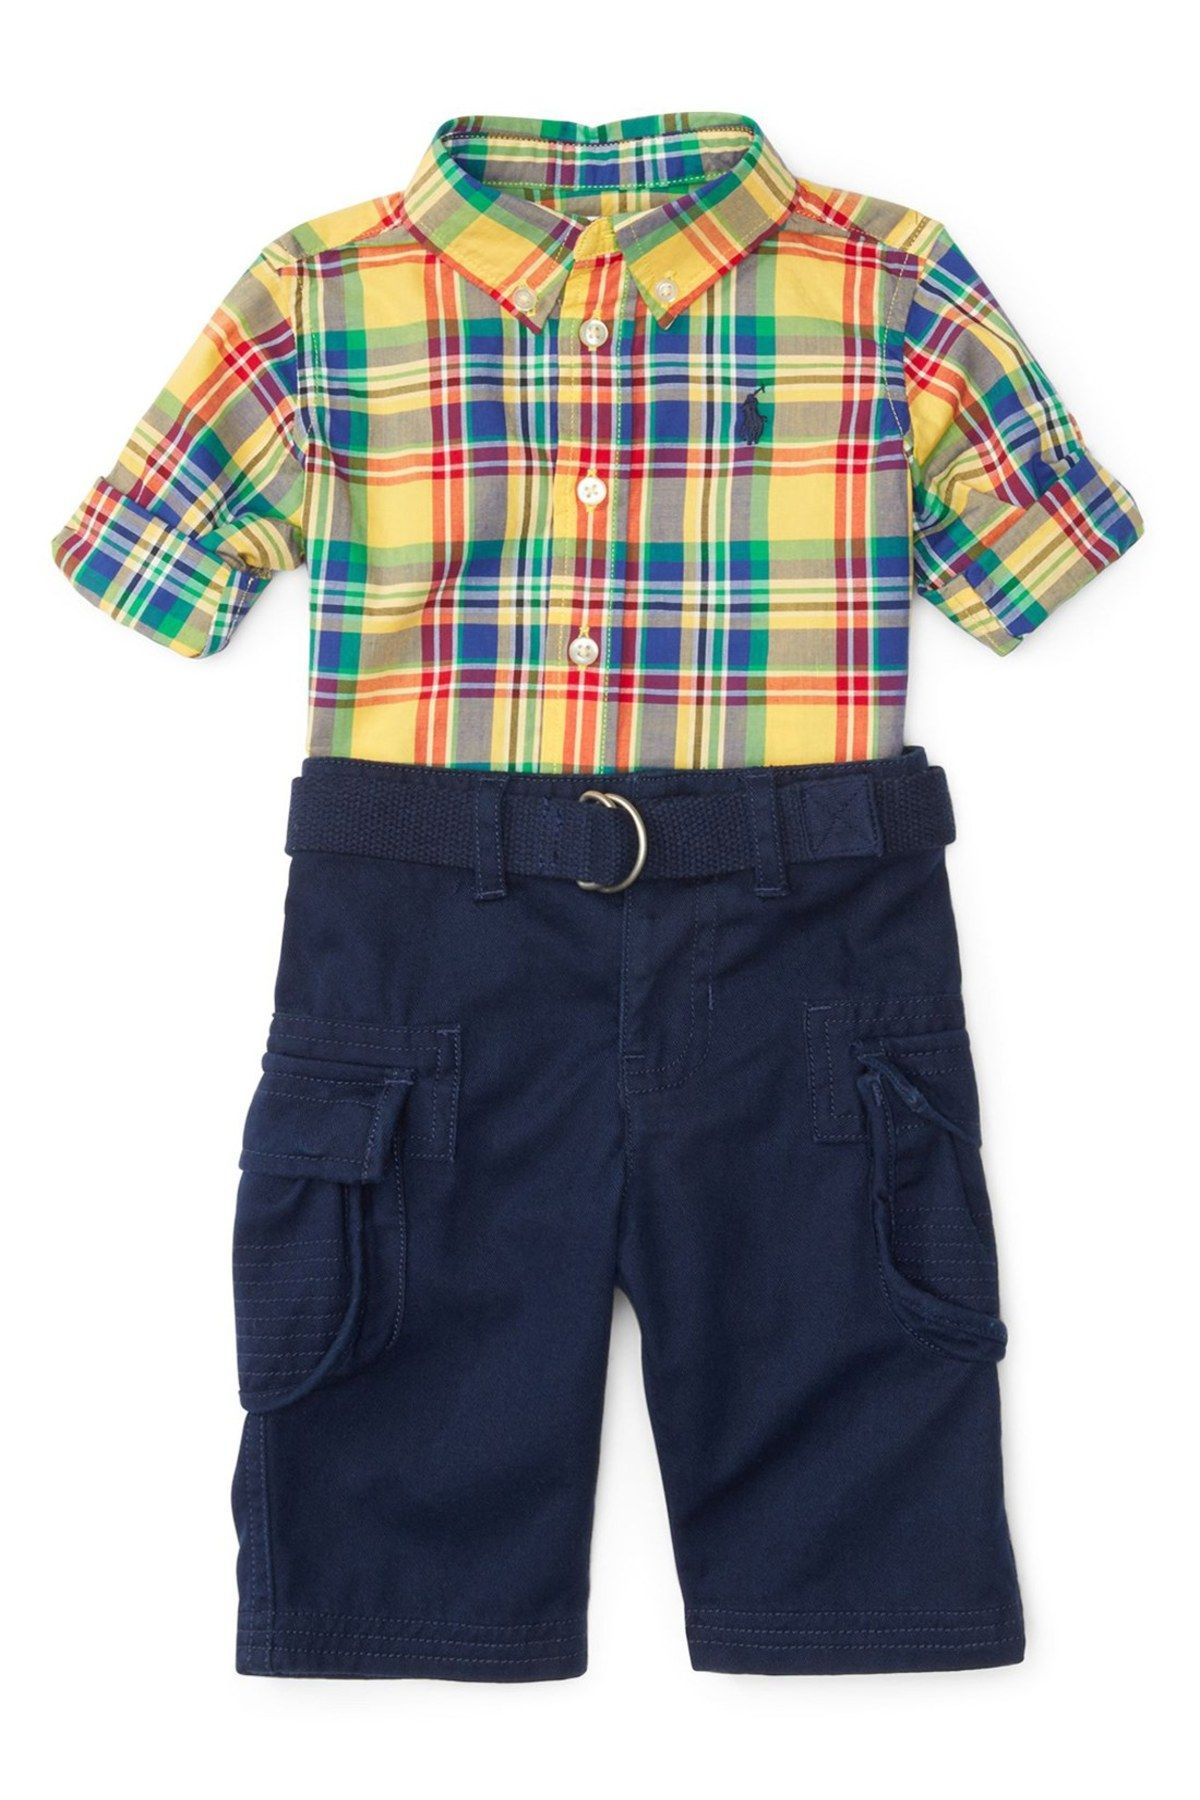 Flannel shirt for baby boy  Plaid Shirt u Cargo Pants Set Baby Boys  Products